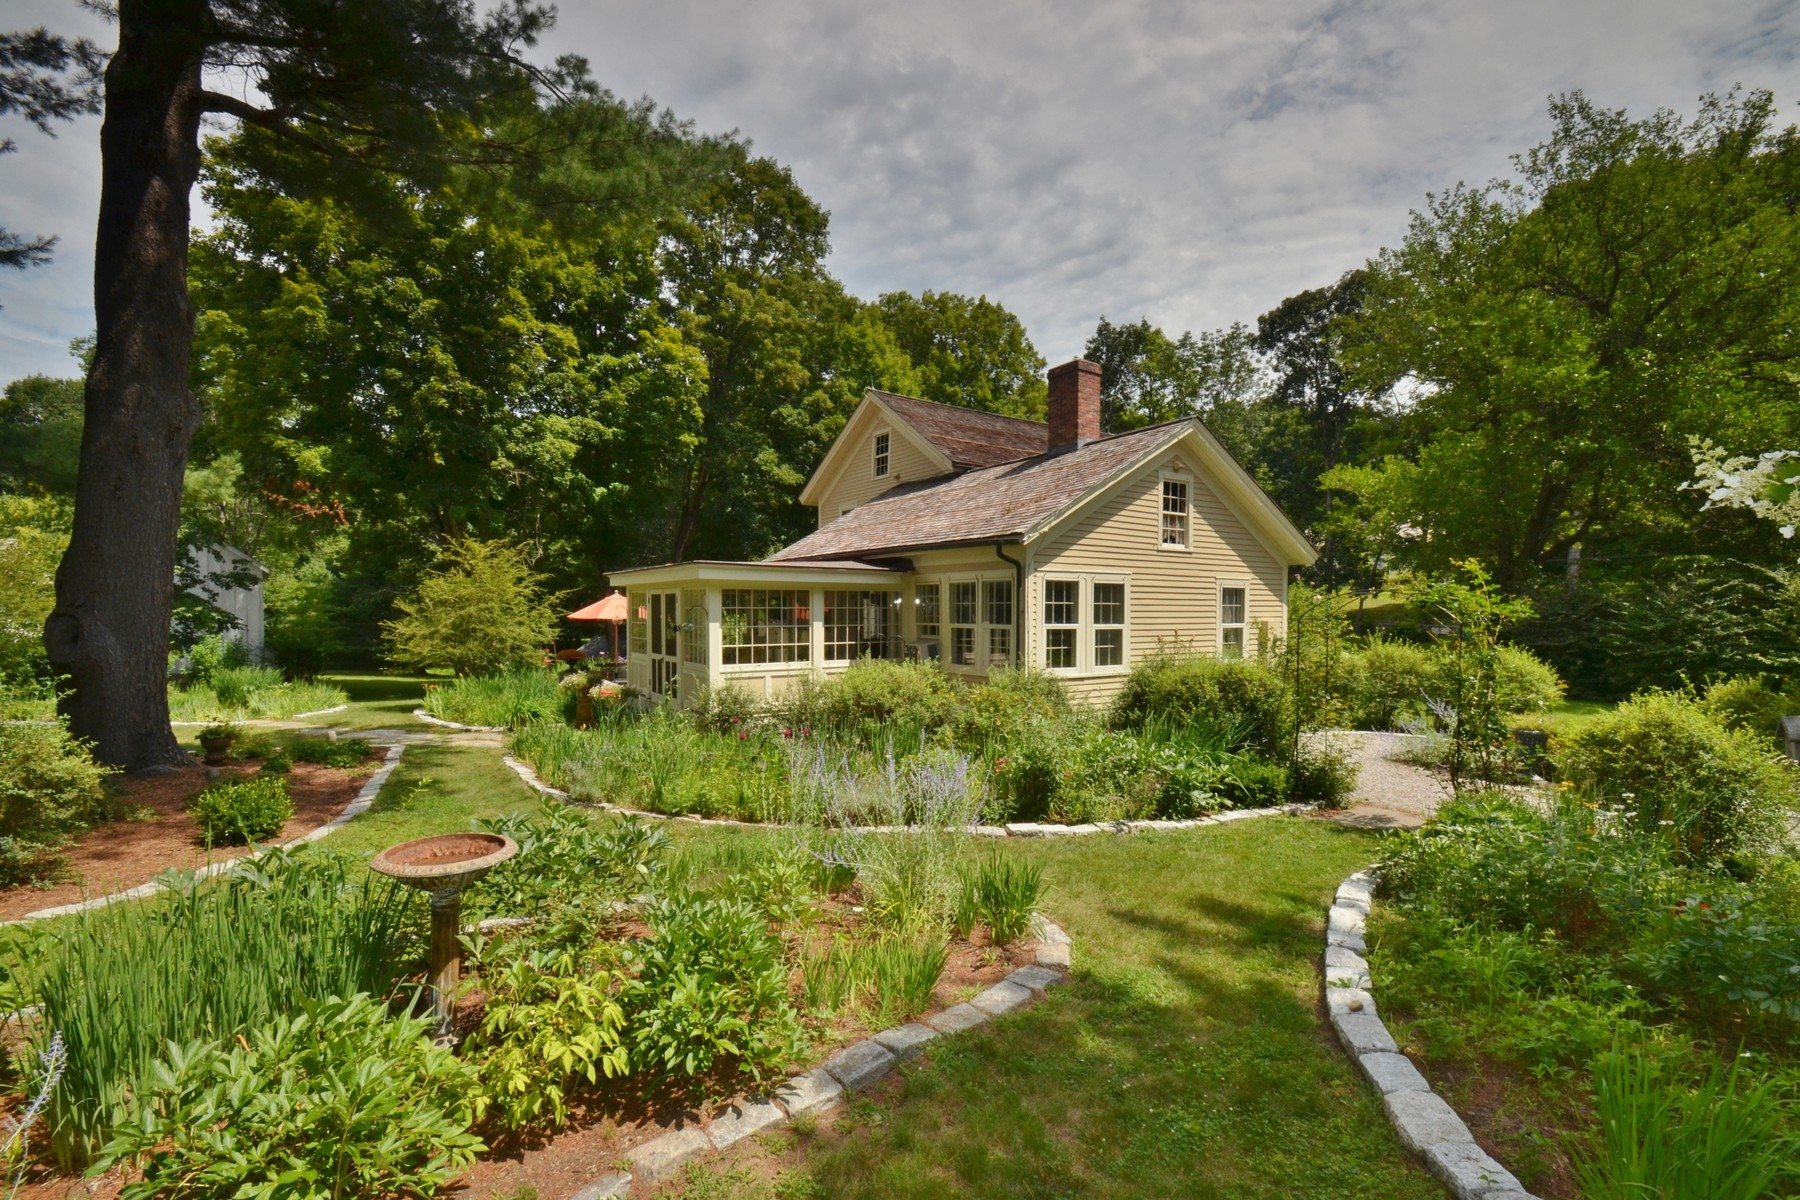 Single Family Home for Sale at Totally Remodedled ca. 1870 Home 1 Selden Rd Lyme, Connecticut, 06371 United States